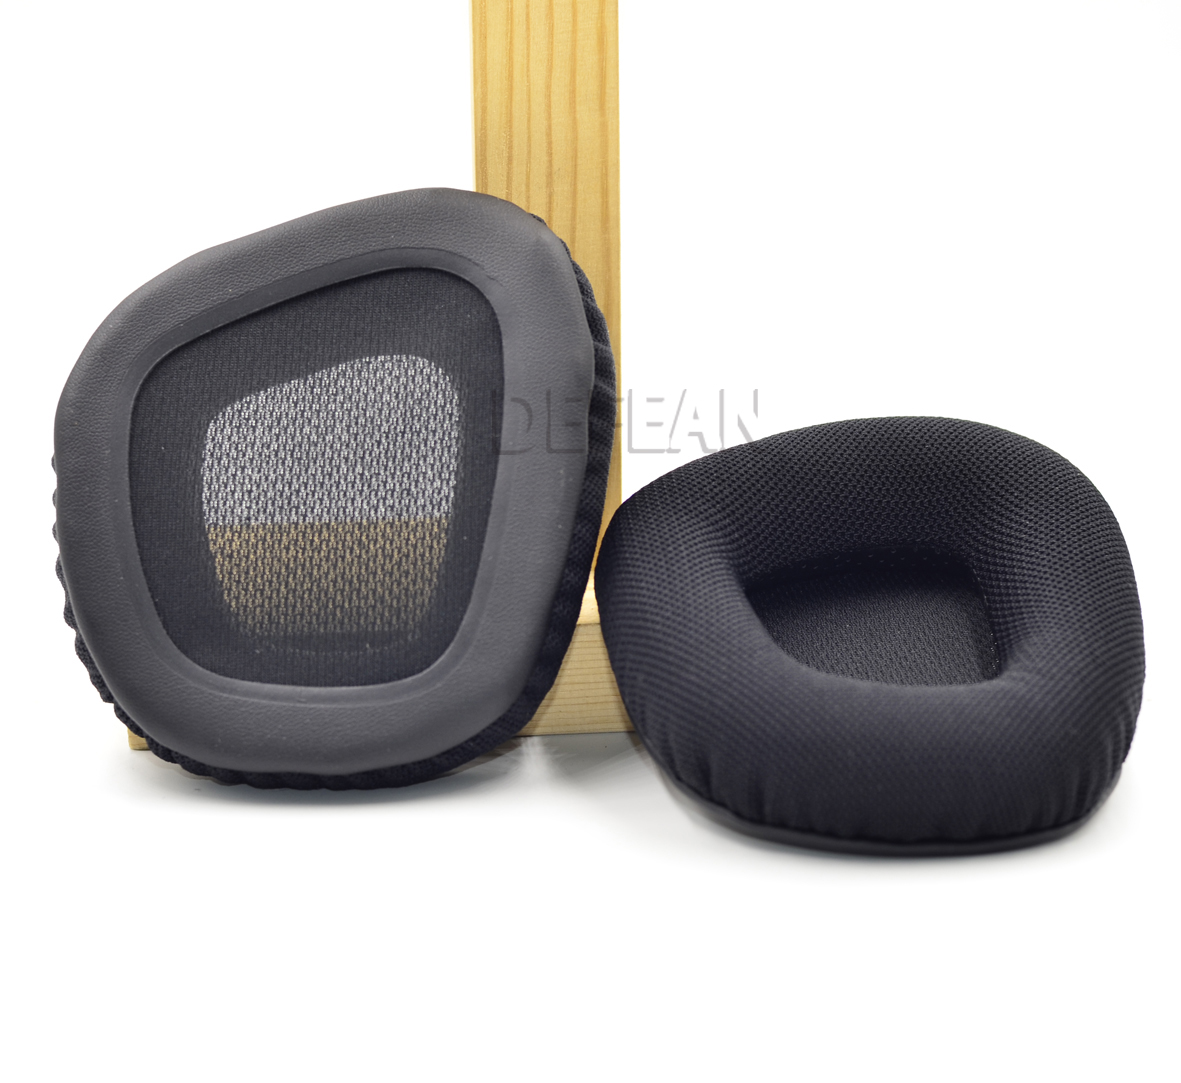 US $12 74 15% OFF|Defean Replacement Ear pads cushion for Corsair VOID PRO  RGB USB Premium Gaming Headset 7 1 headphone-in Earphone Accessories from